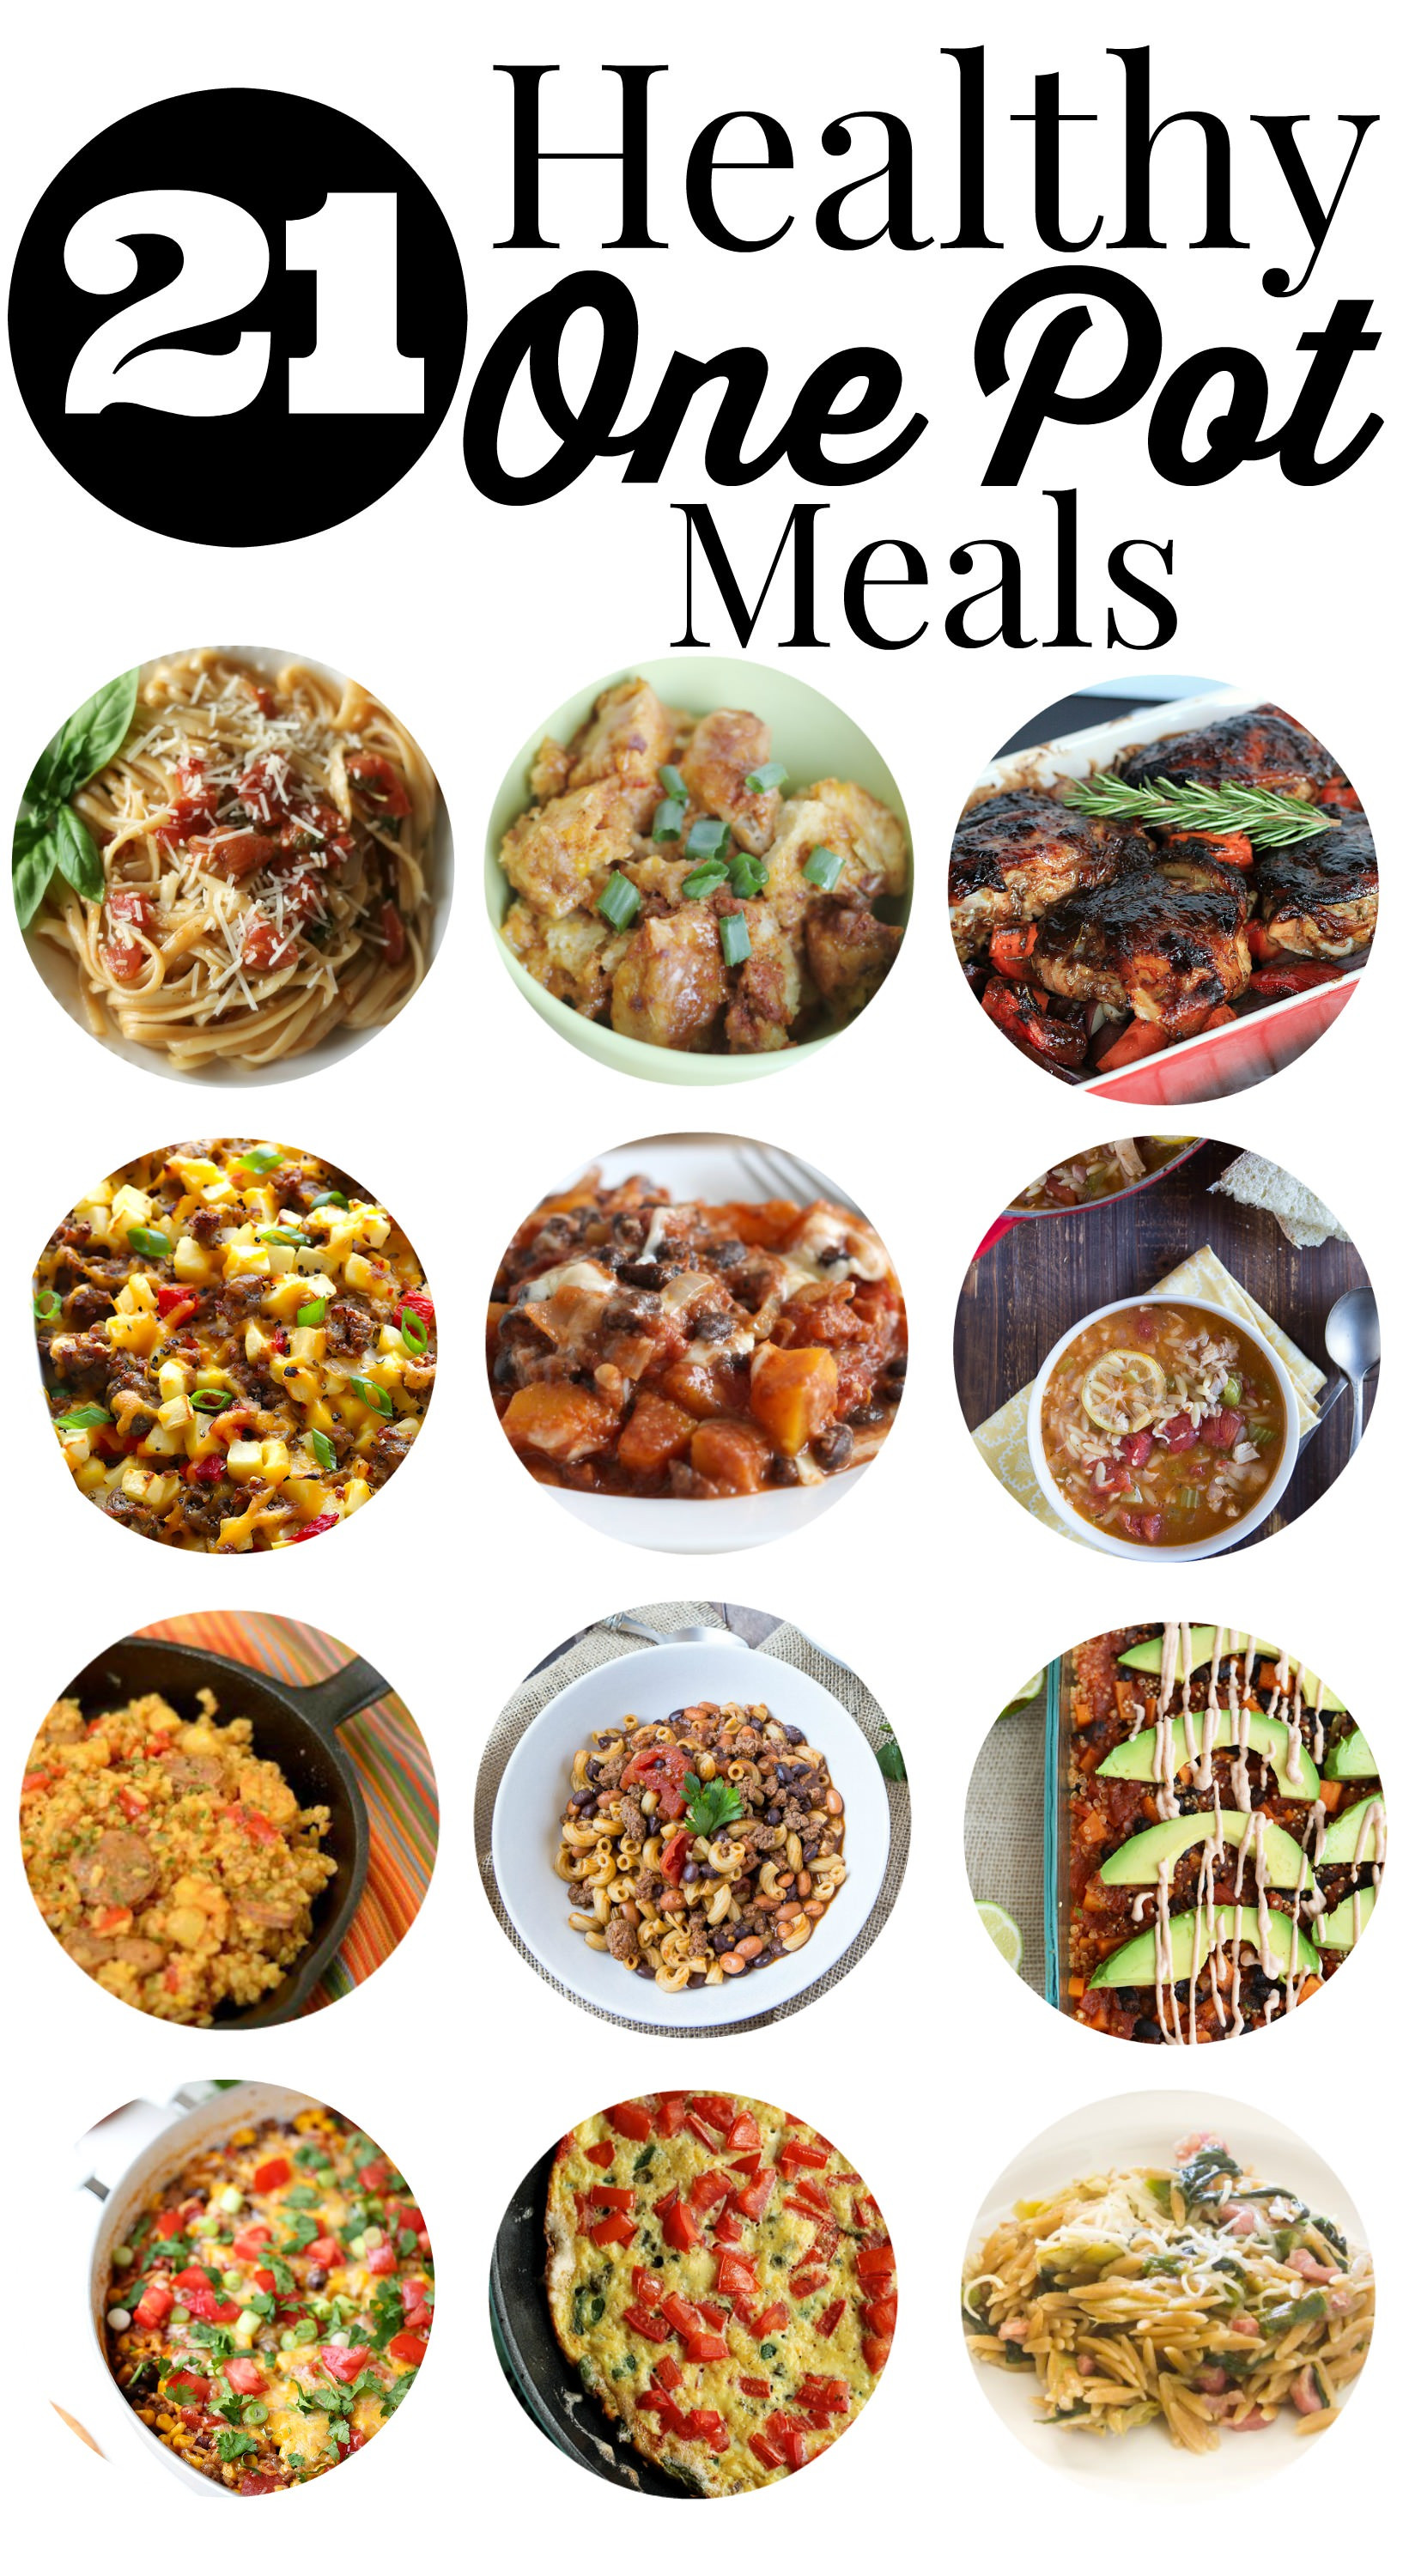 Healthy One Pot Dinners  21 Healthy e Pot Meals